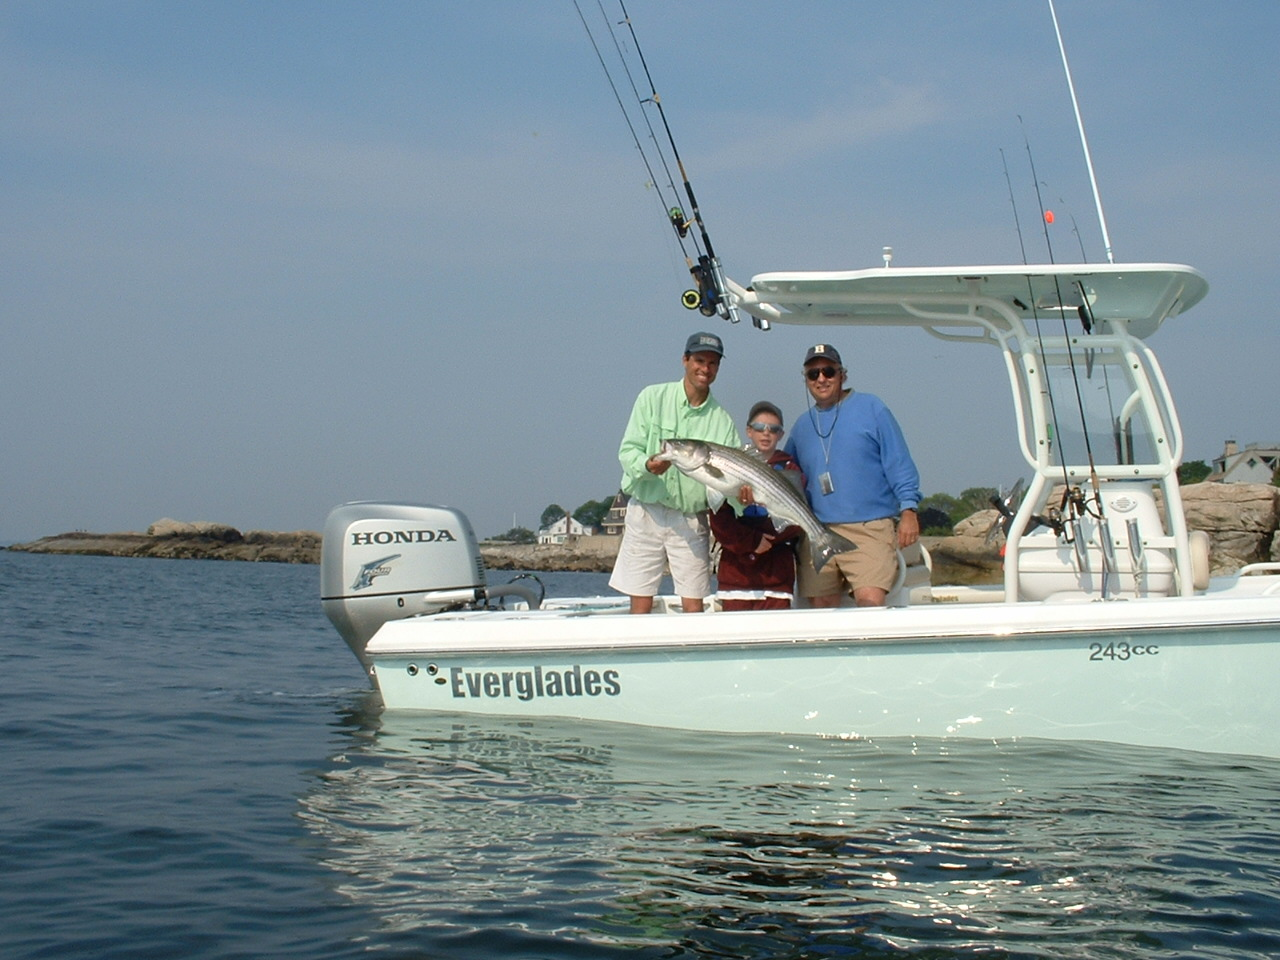 fishing pictures 564.jpg